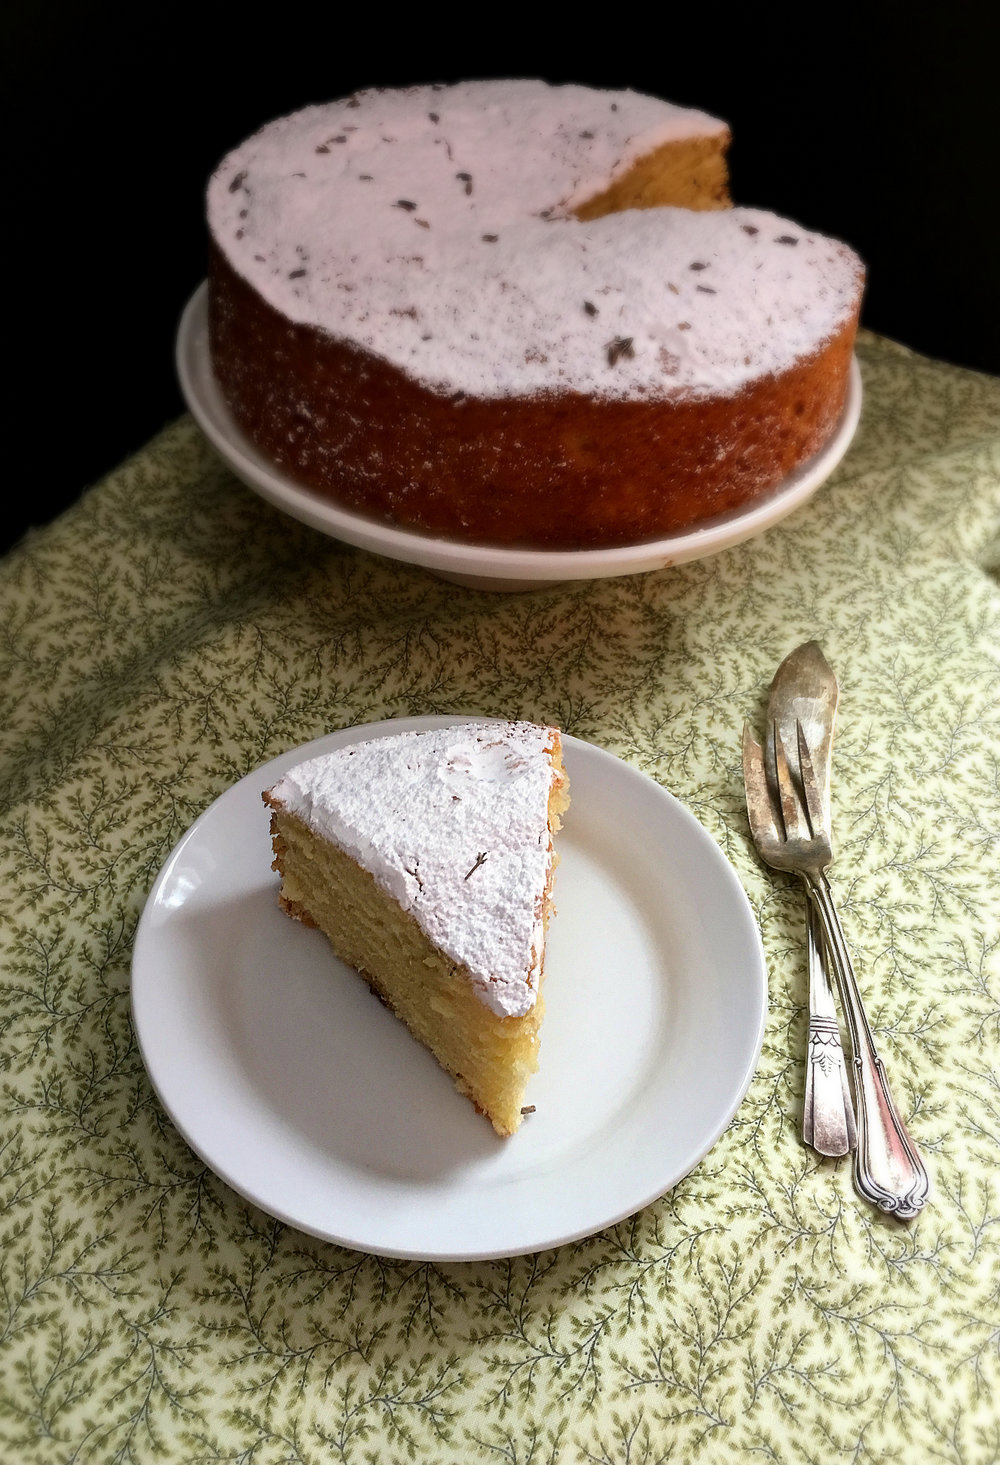 Lemon & Lavender Cake - Yield: One 8-inch Round Cake, about 6 servings